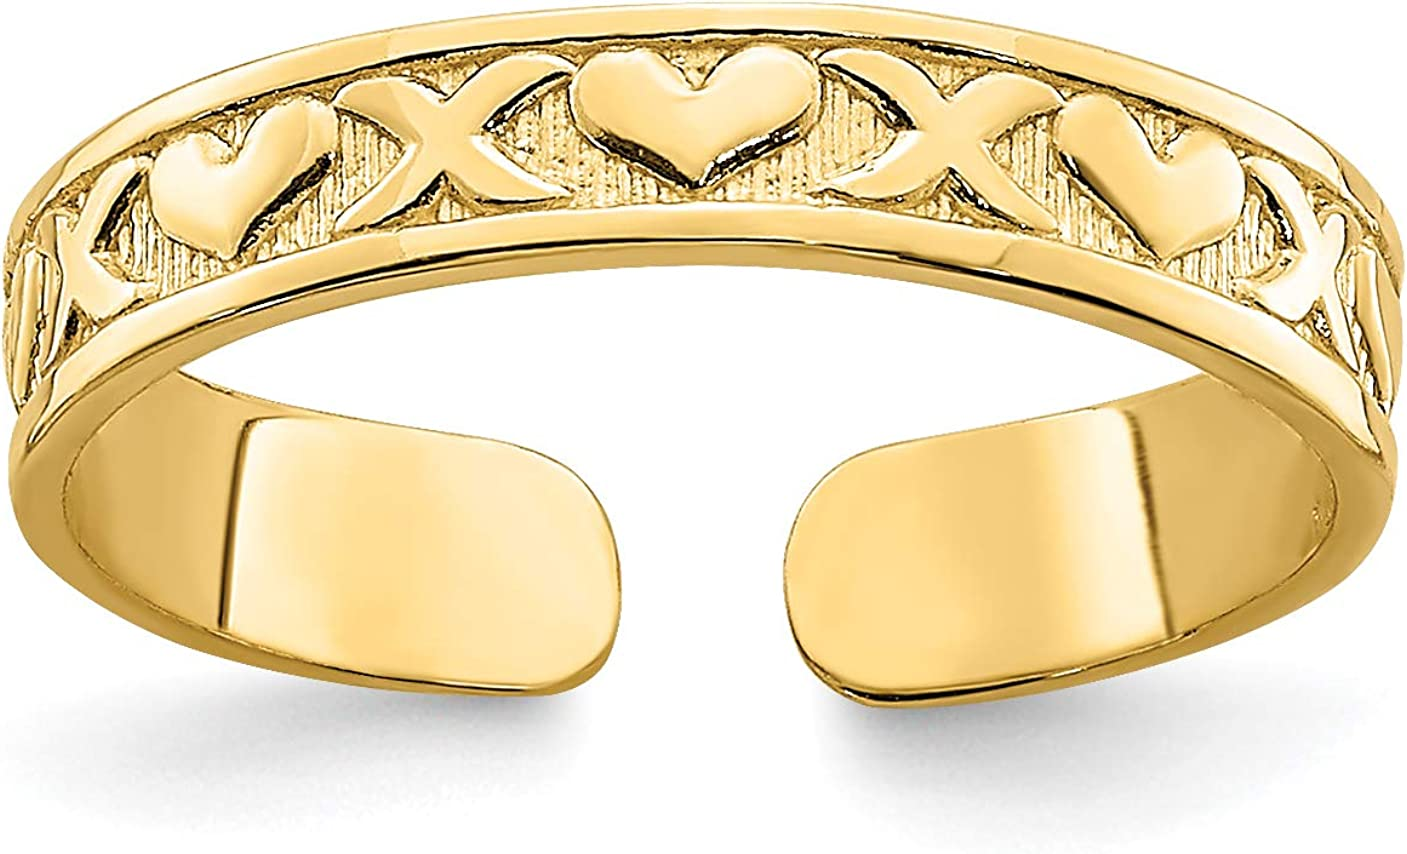 14k Yellow Gold Alternating X and Hearts Pattern Toe Ring